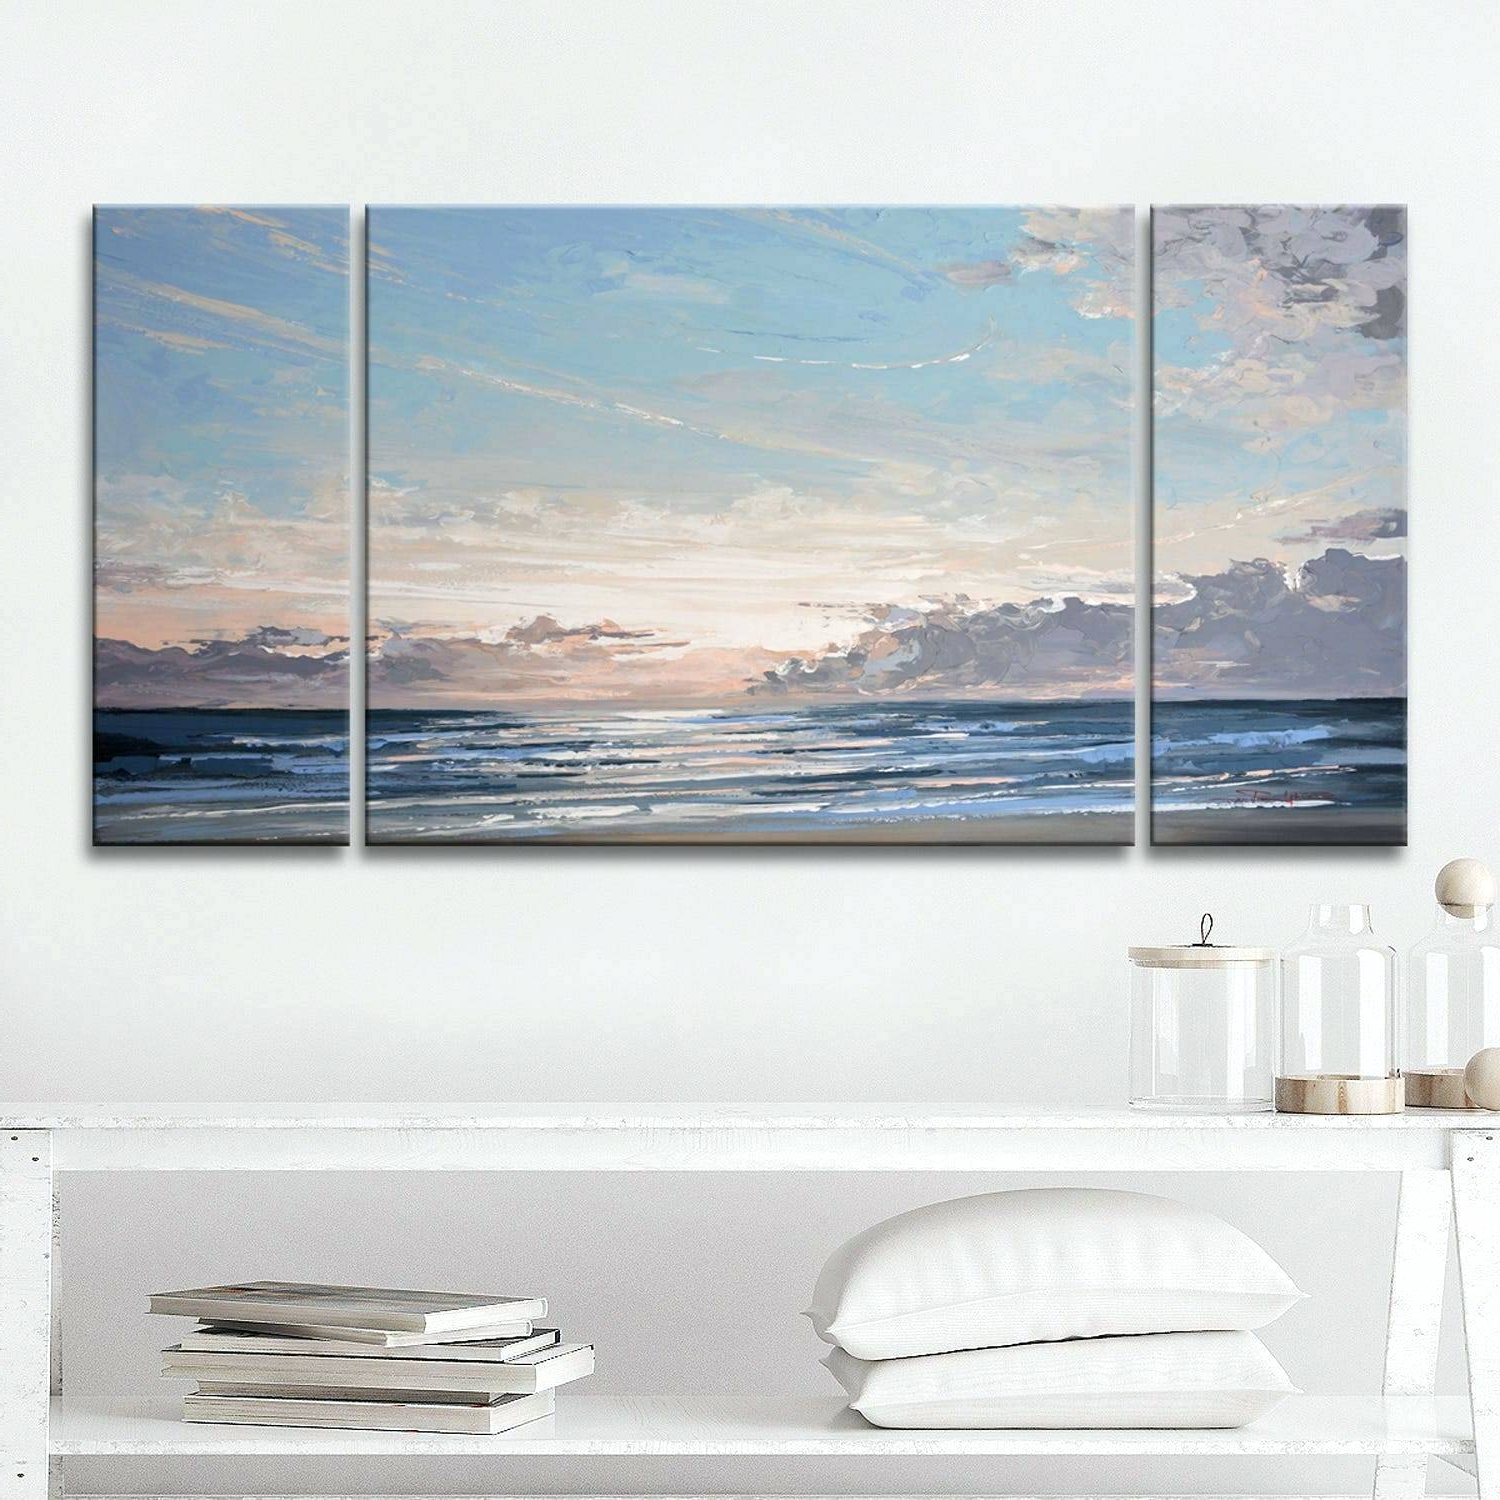 3 Piece Canvas Set Walmart Wall Art Large Abstract Sets Sea Stone Intended For Favorite 3 Piece Wall Decor Sets By Wrought Studio (Gallery 16 of 20)